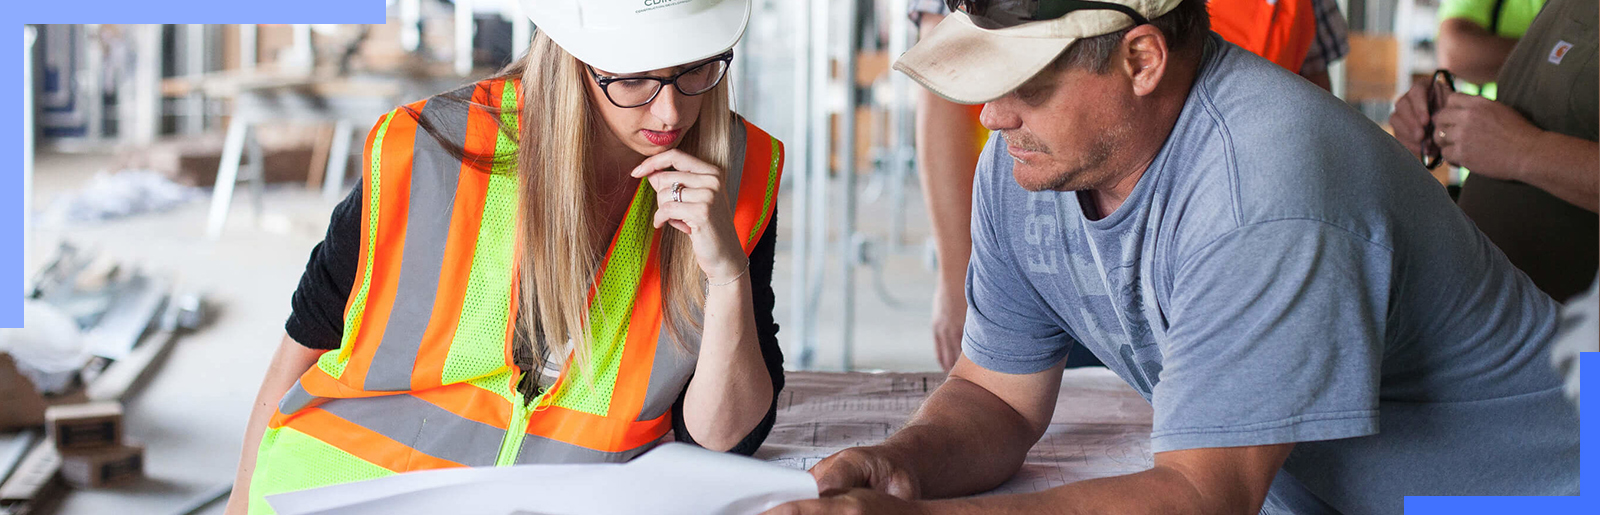 contractor calculating man-hour productivity on site